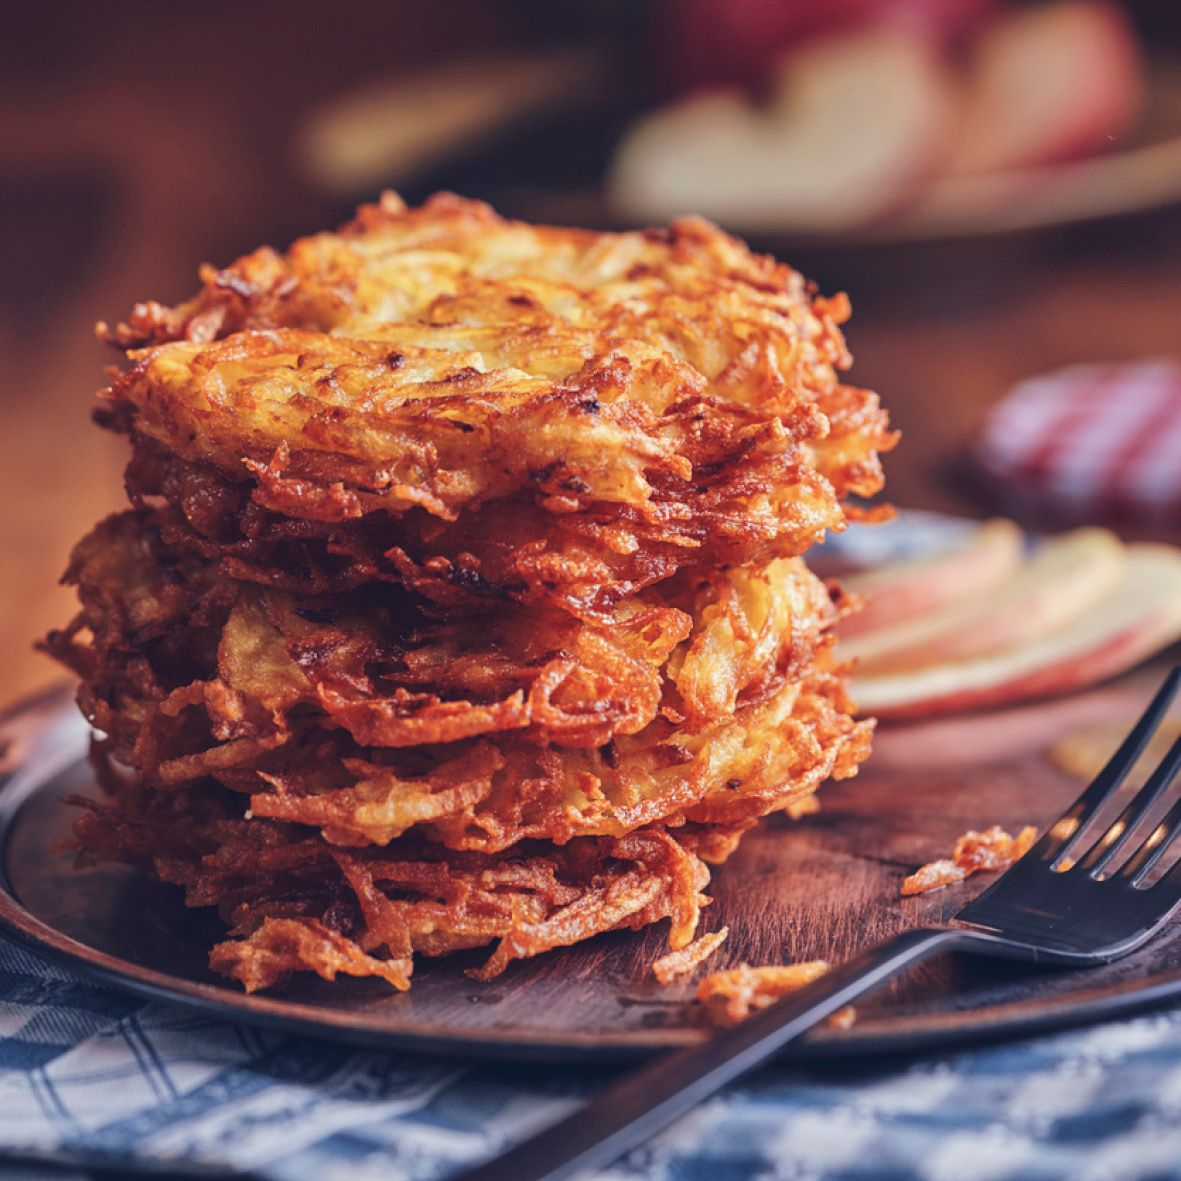 Crispy_potato_hash_browns.jpg